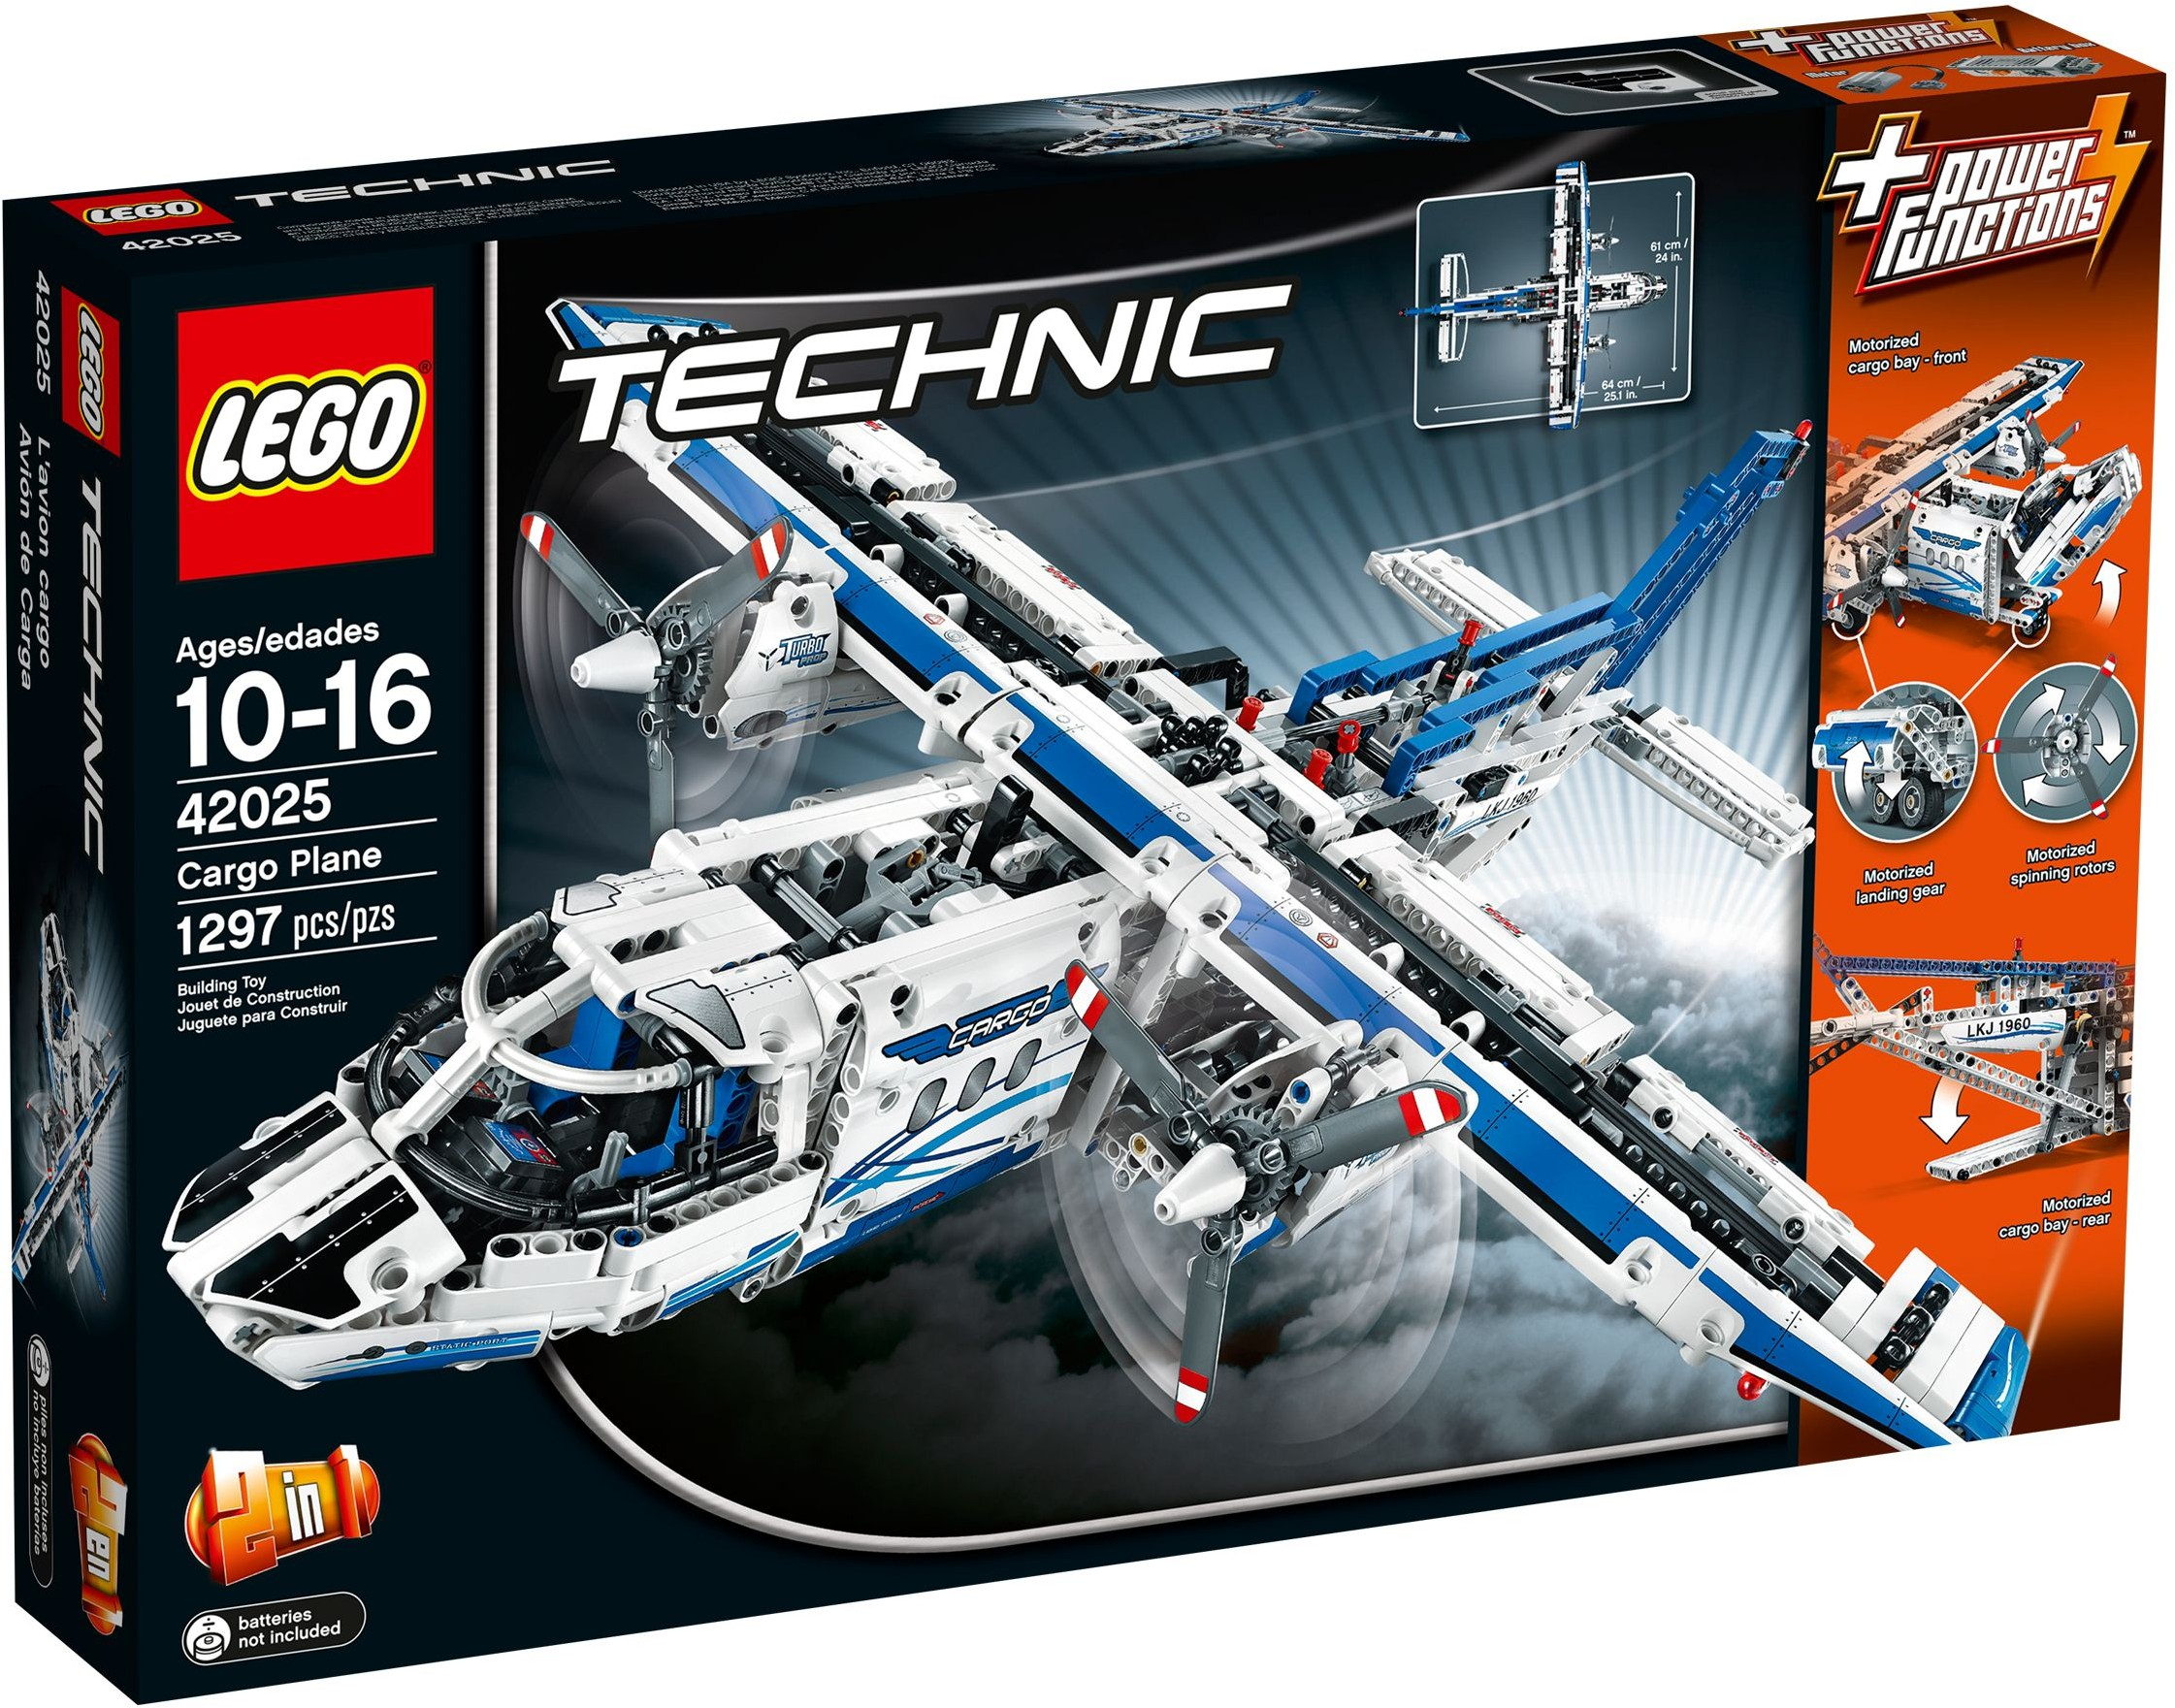 LEGO Technic Sets: 42025 Cargo Plane NEW